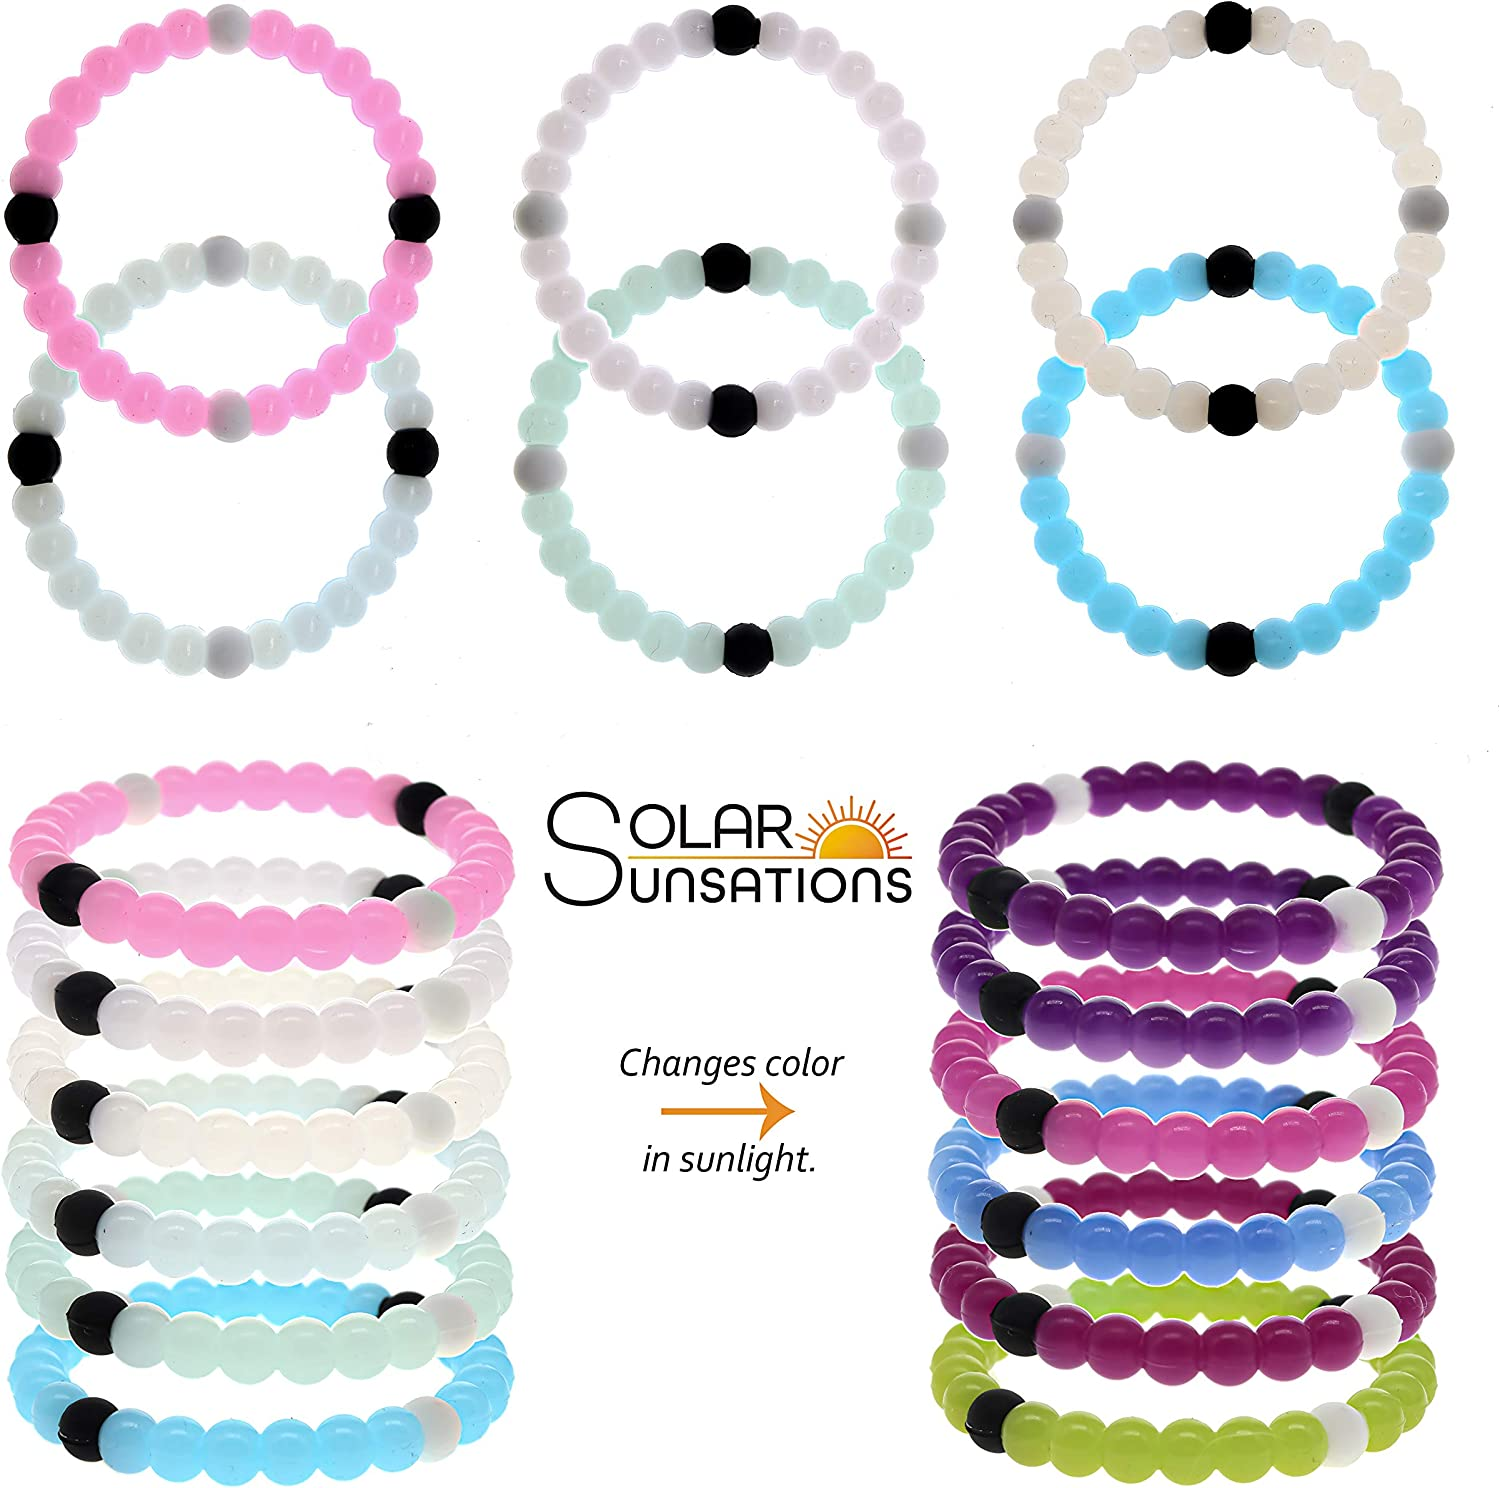 Girls Fashion Accessories Plastic Bracelets Set of 18 Assorted Colors Childrens Pretend Play or Birthday Party Favors Smart Buy U.S.A